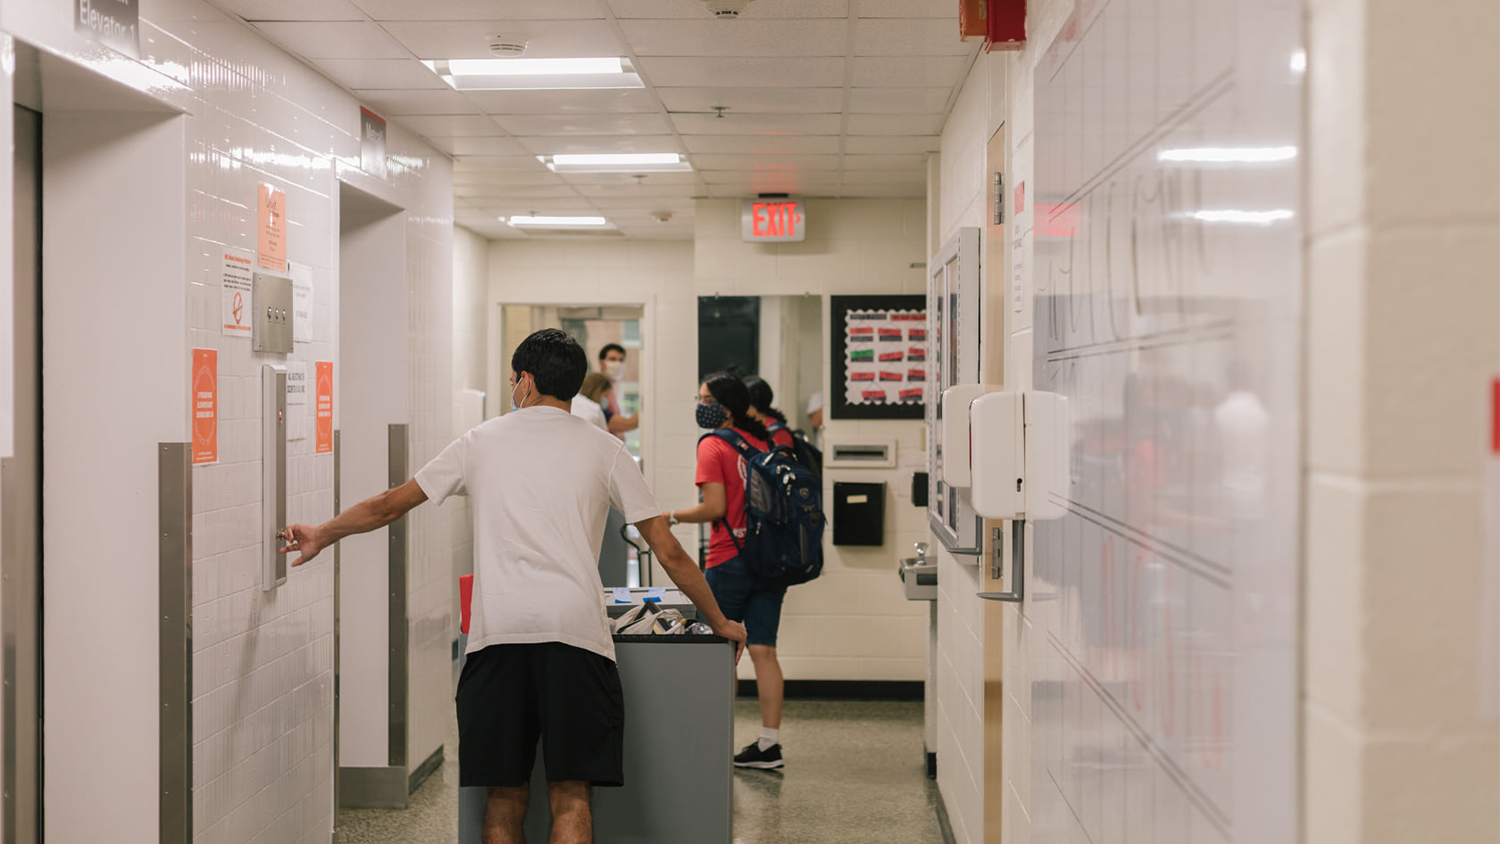 A student pushes their moving cart along a hallway in a residence hall